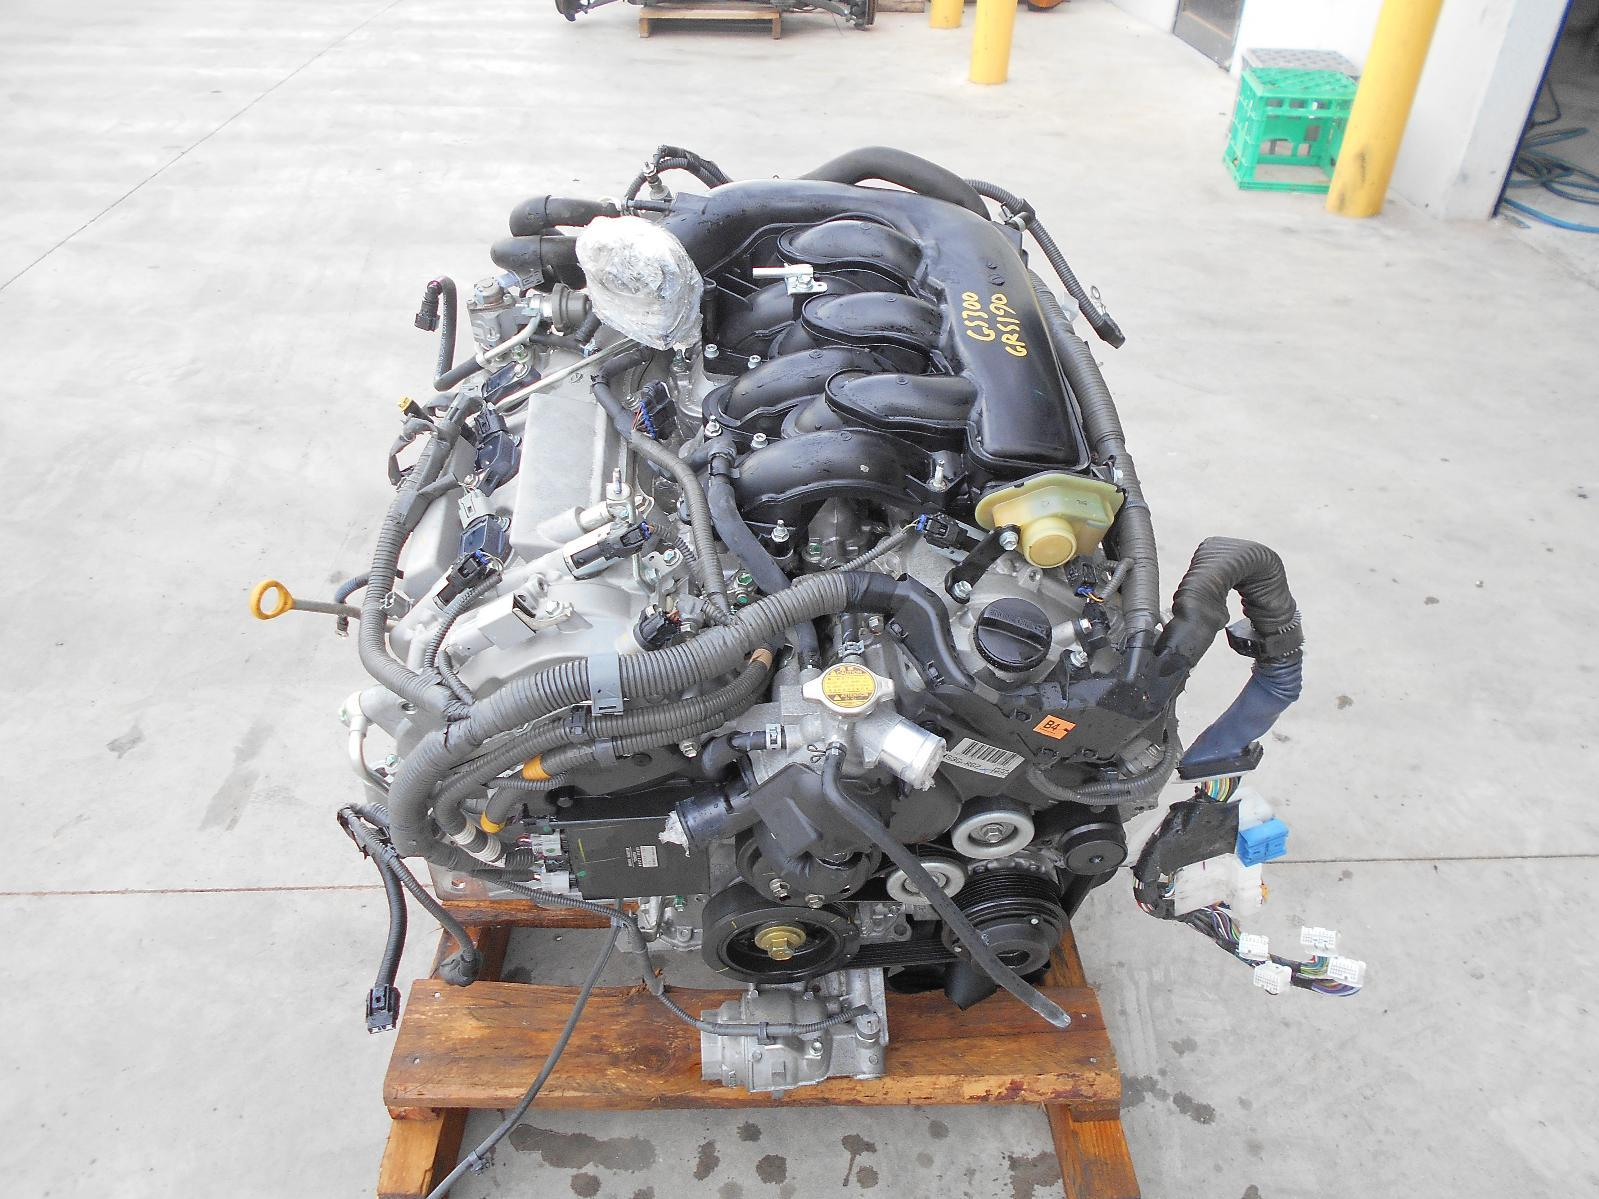 LEXUS GS, Engine, PETROL, 3.0, 3GR, 190 SERIES, 03/05-12/11